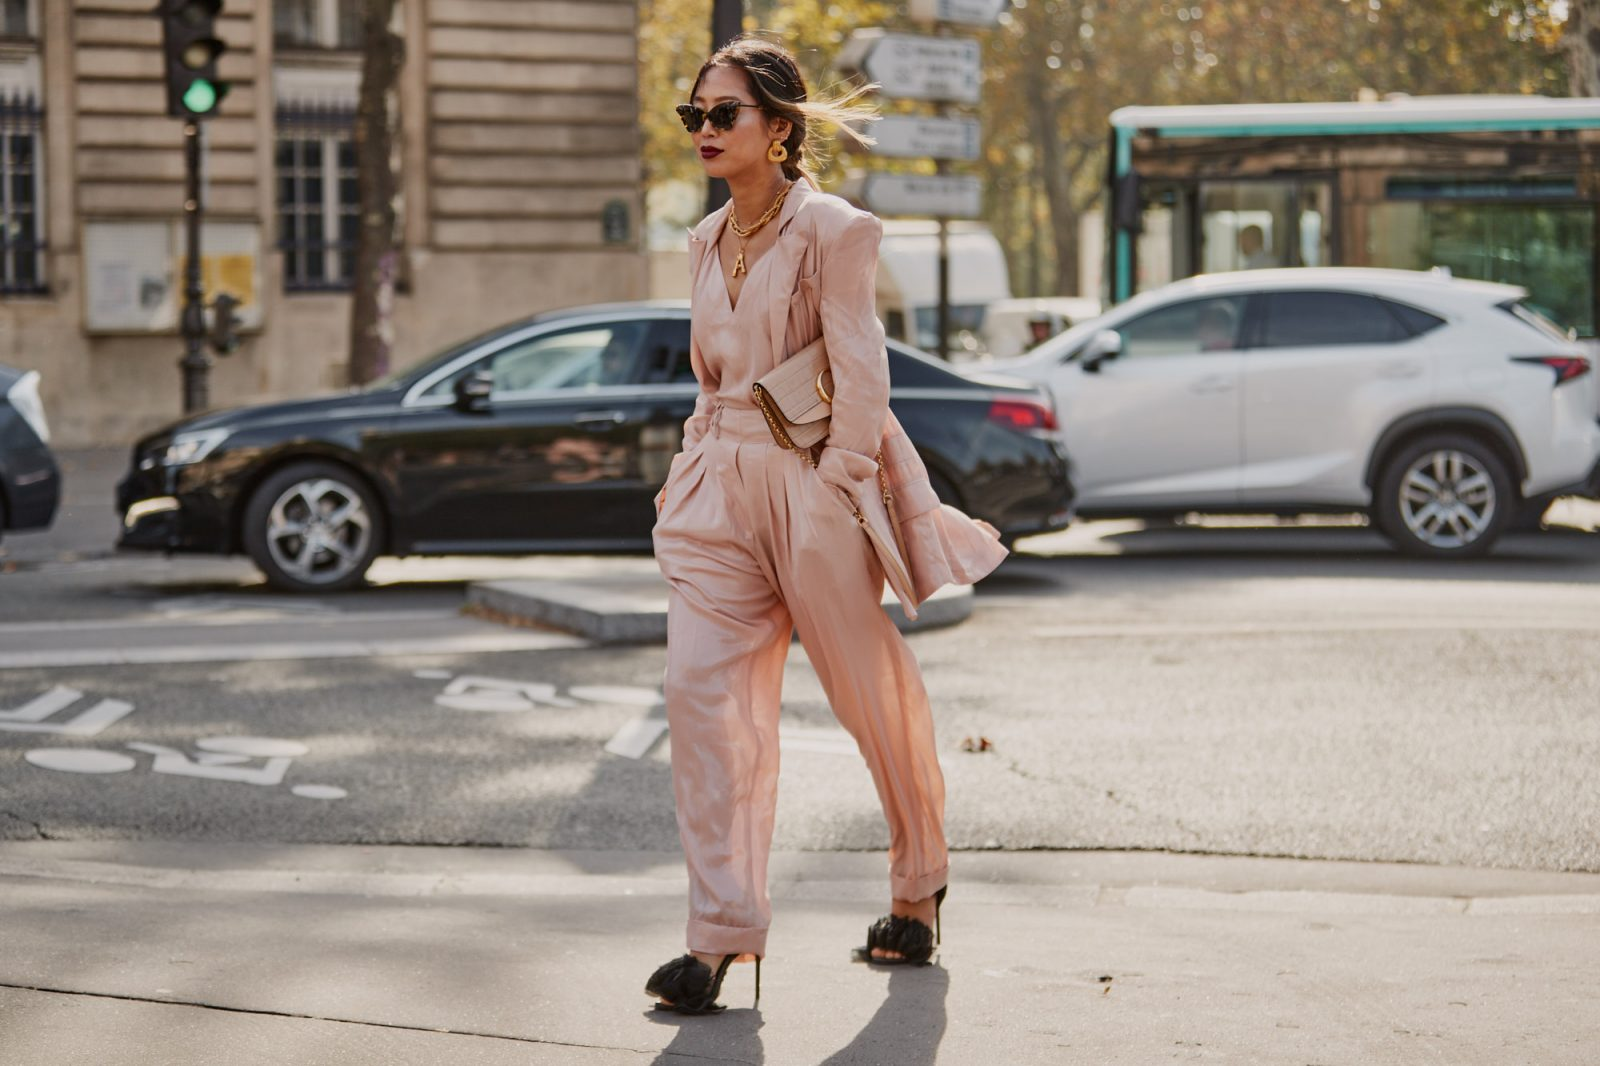 relaxed rose fashion suit for the office or a night out